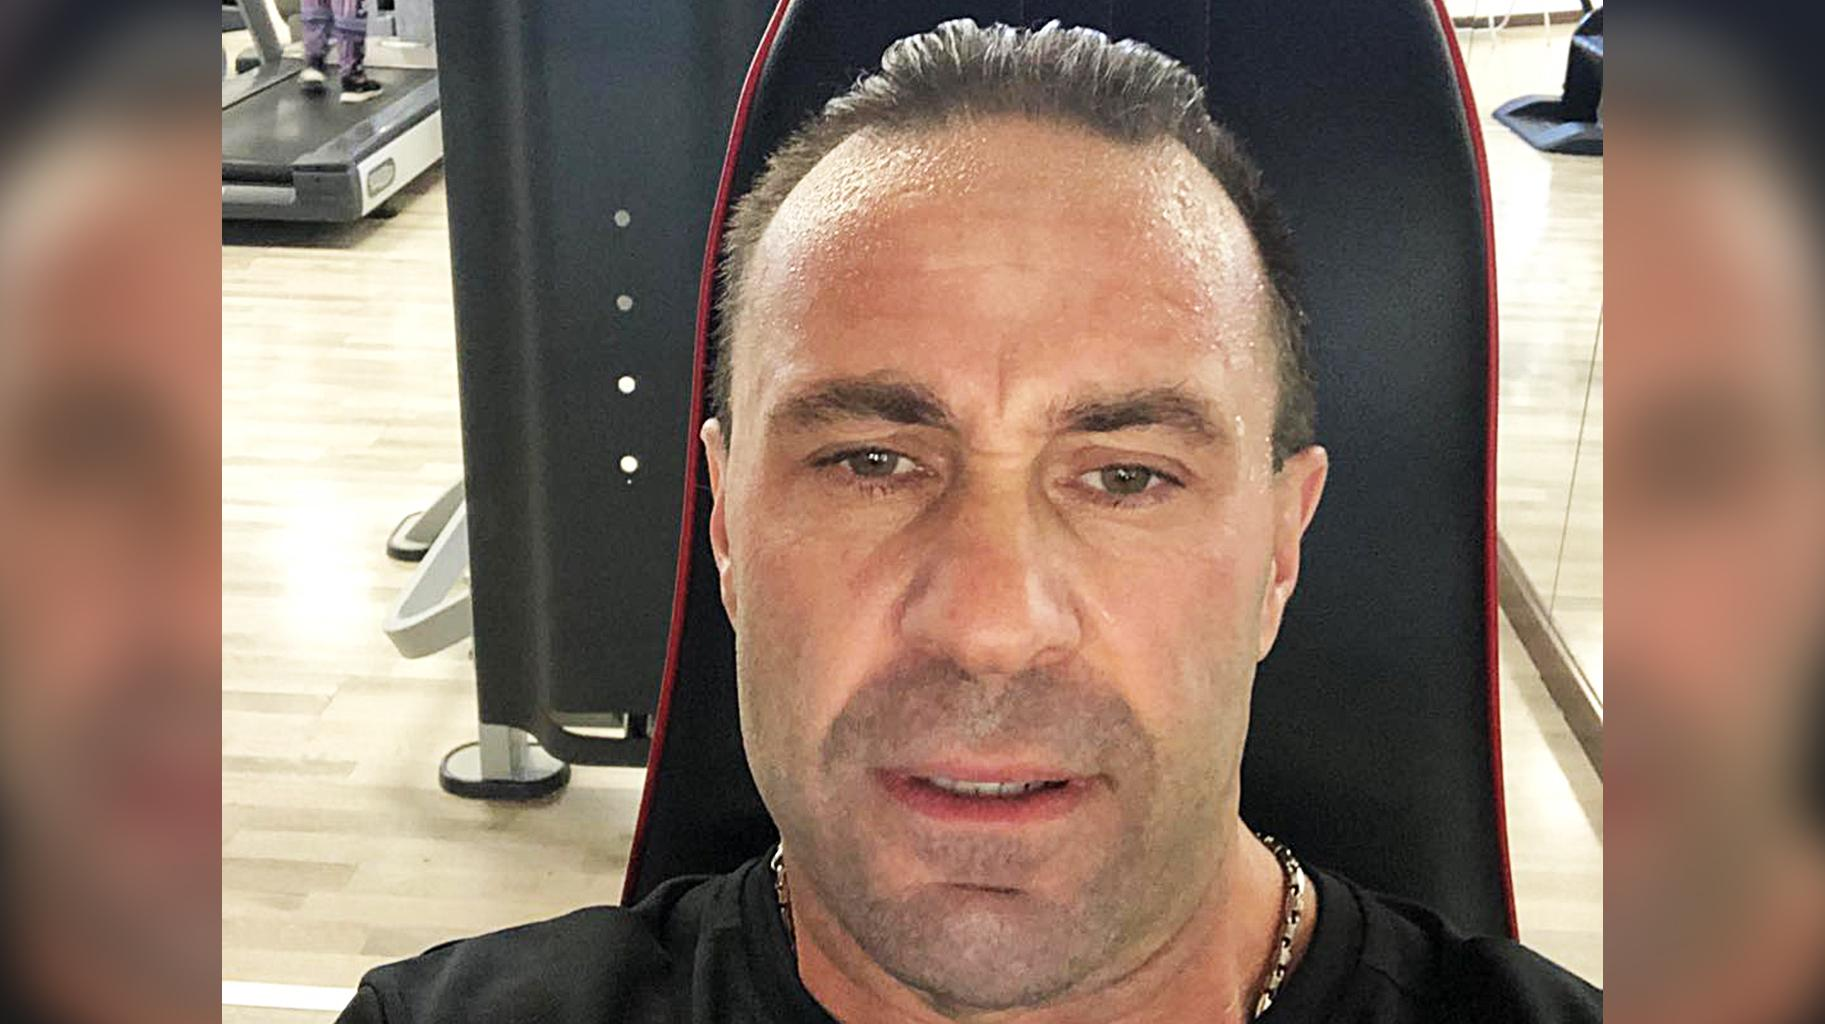 Joe Giudice Reportedly Super Excited For His First Boxing Match - Has Been Training Hard!